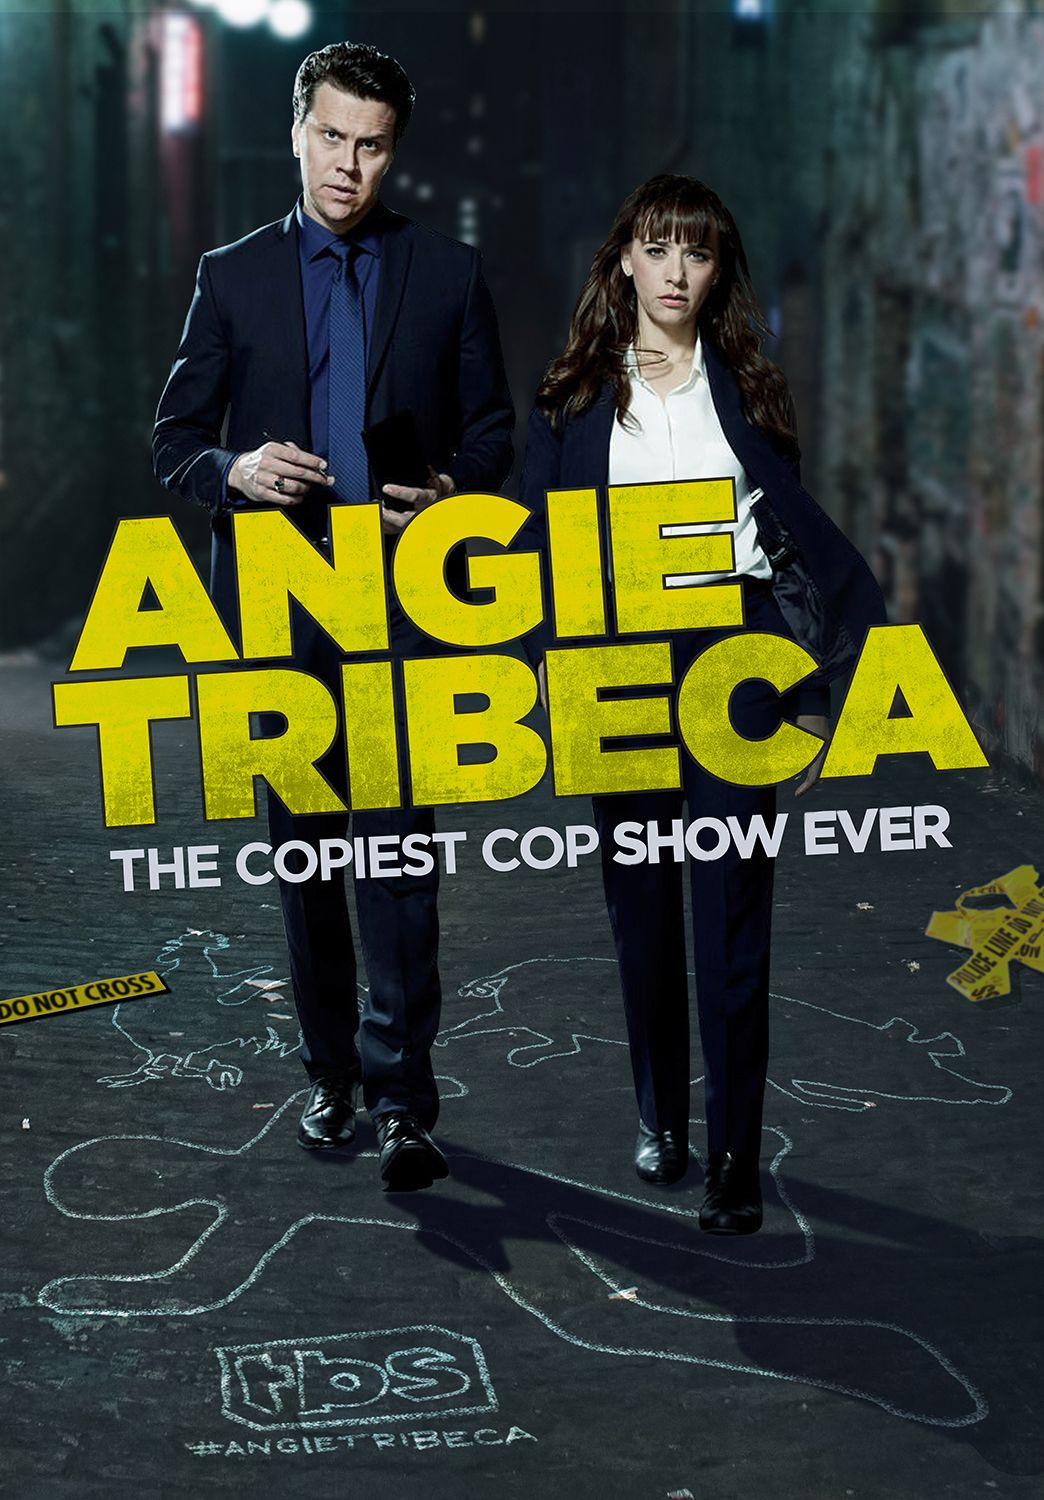 Angie Tribeca Season 1 and 2 complete Download 480p